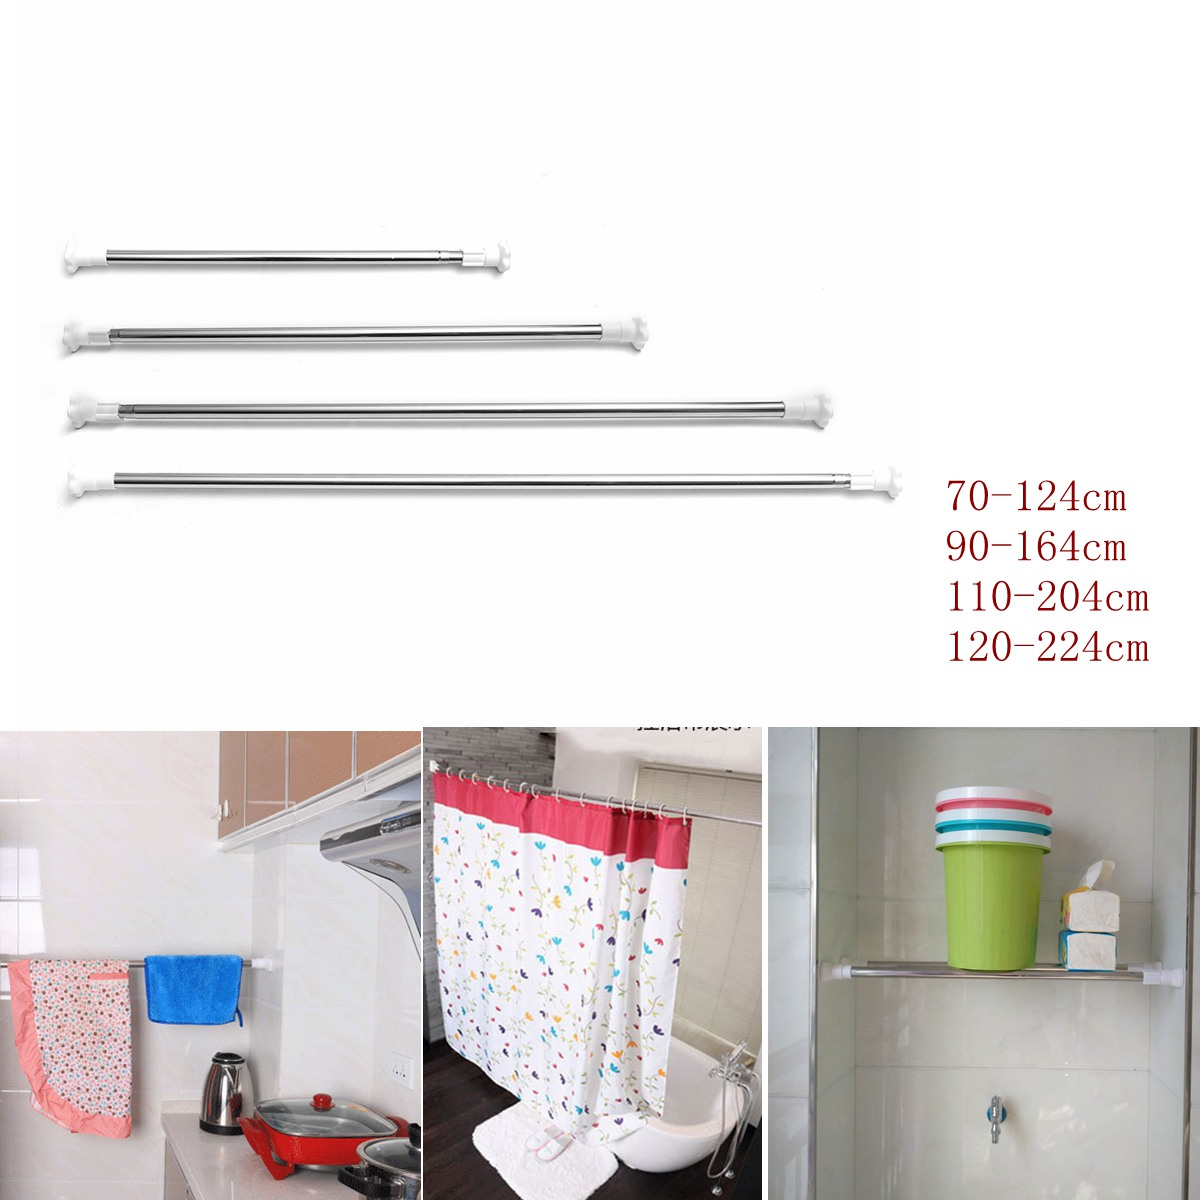 Adjustable Steel Rods Rails Bars Steel Telescopic Extendable Wardrobe Windows Bath Showe ...